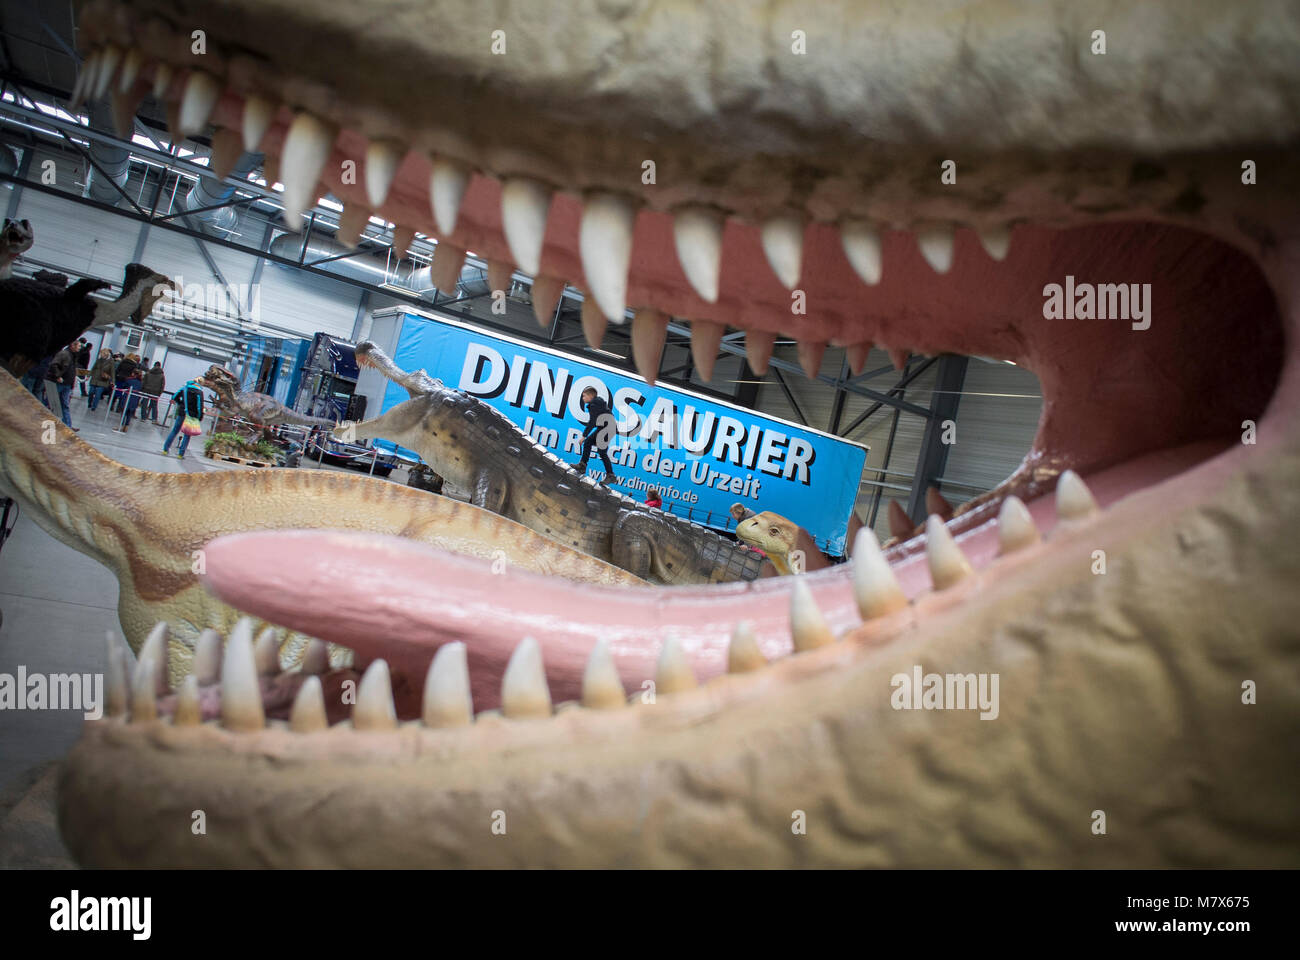 Dinosaurs at an exhibition at Messe Arena, Halle, Saxony-Anhalt, Germany. - Stock Image